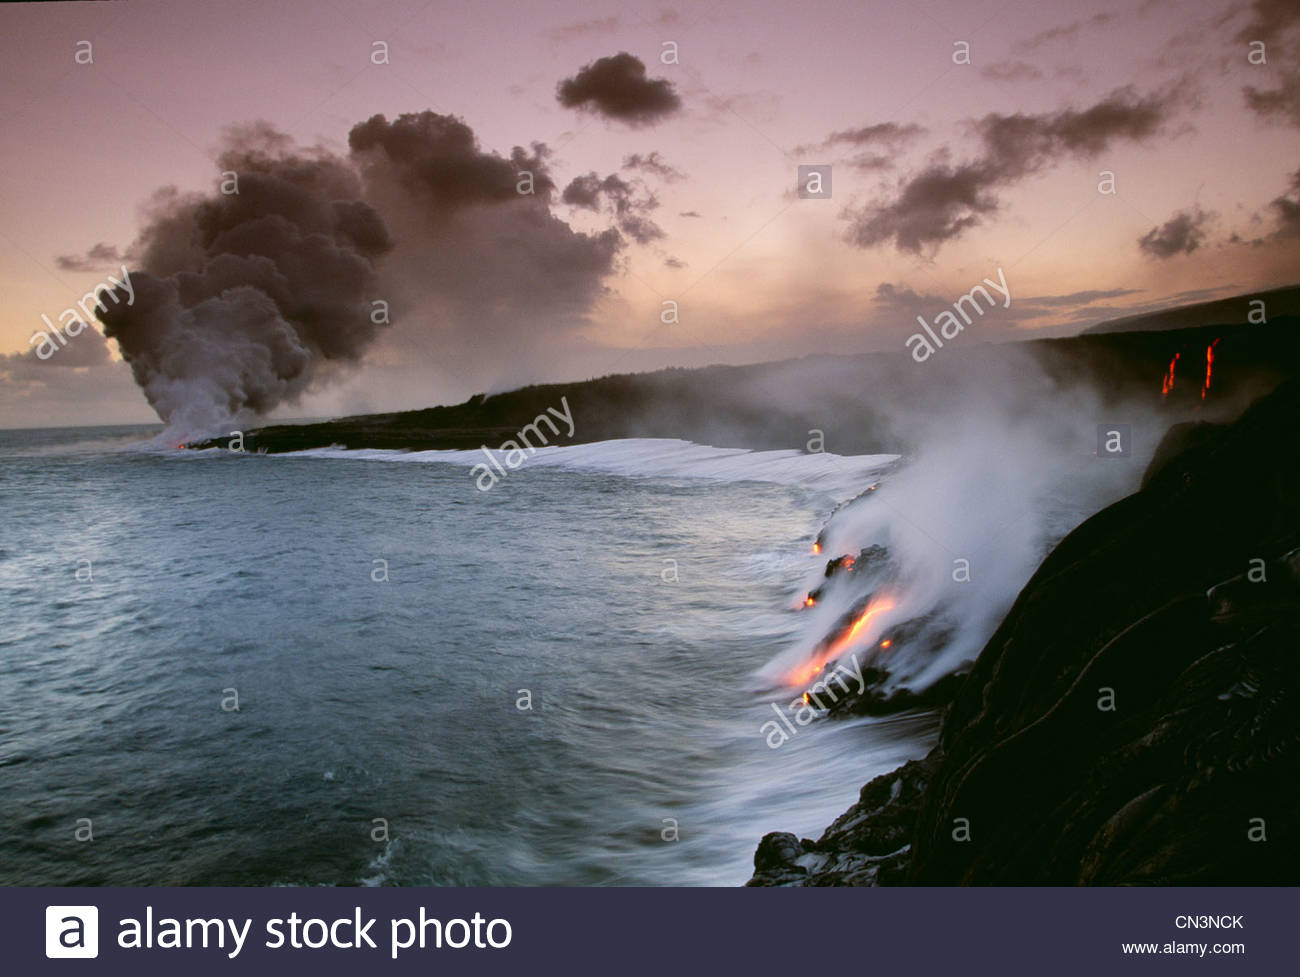 Lava flows entering the ocean, Hawaii Volcanoes National Park, Hawaii - Stock Image